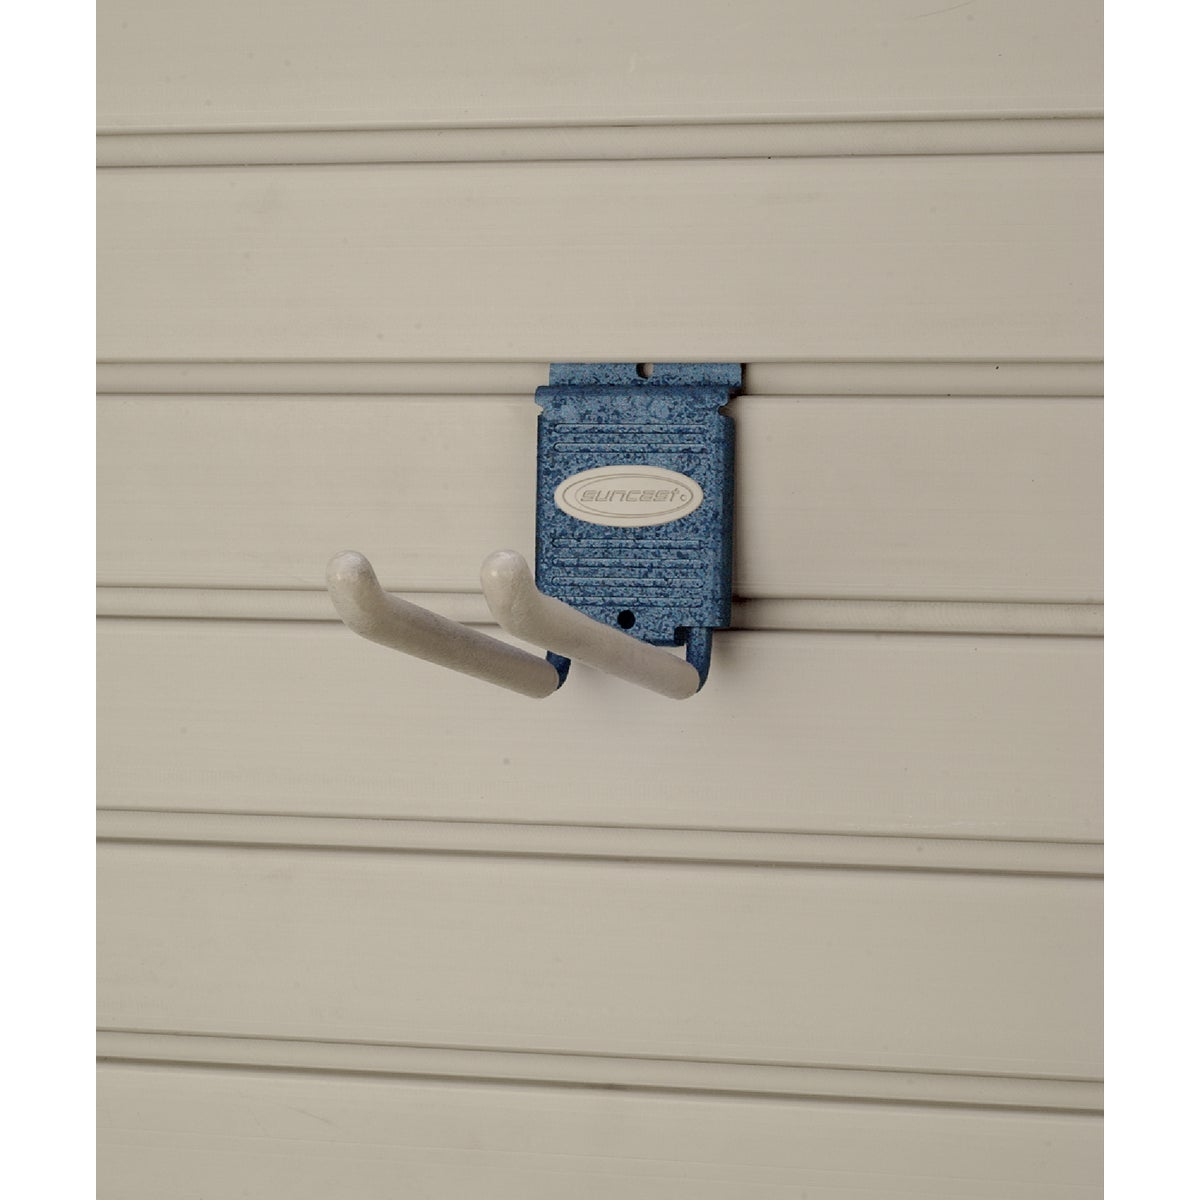 "4"" SLATWALL DOUBLE HOOK - MH4D by Suncast Corporation"